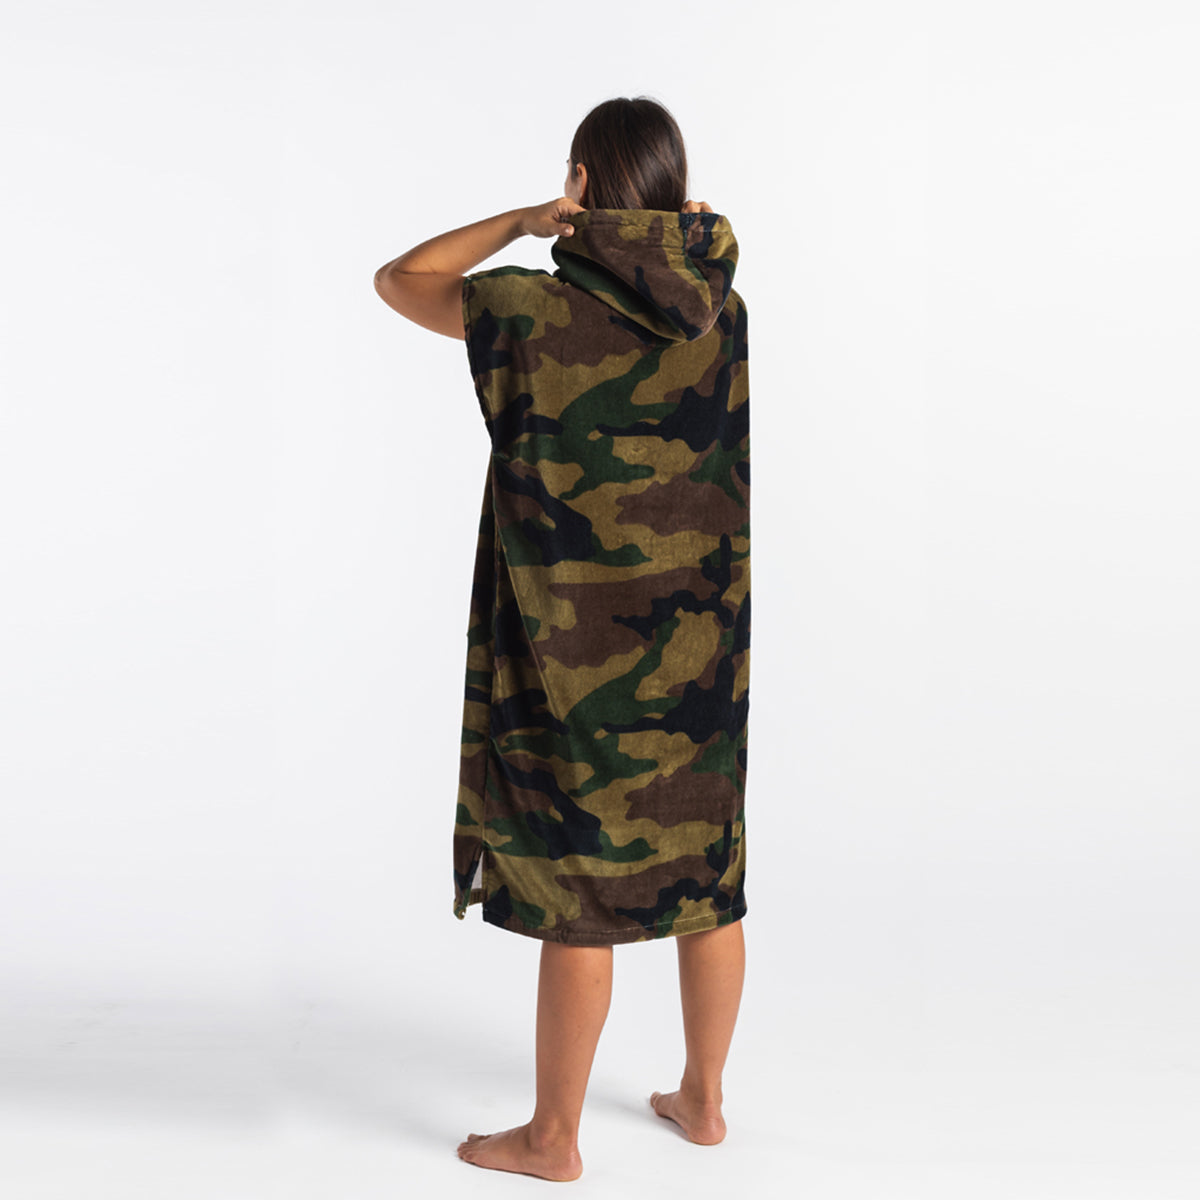 Regime Changing Poncho - Small - Slowtide